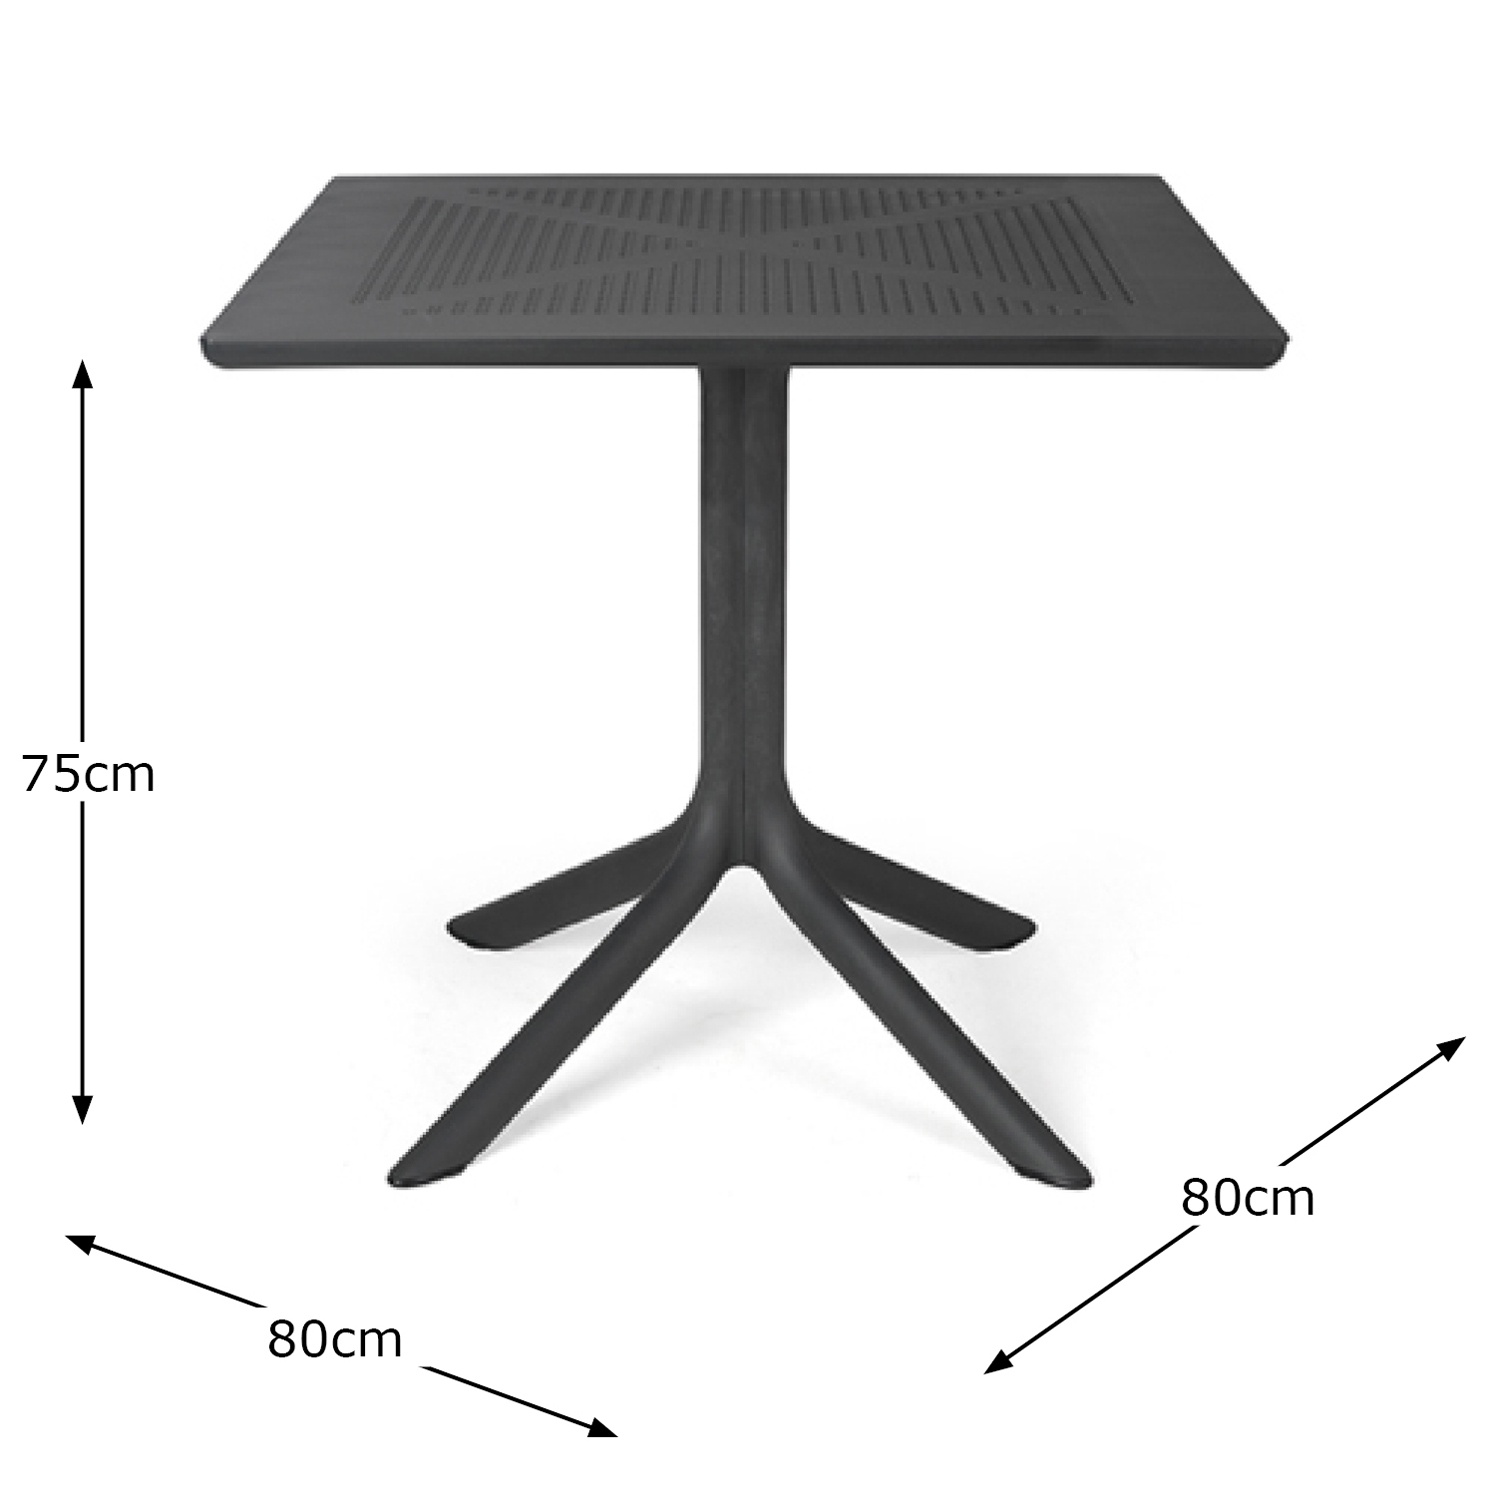 CLIP TABLE ANTHRACITE DIMENSION MS1